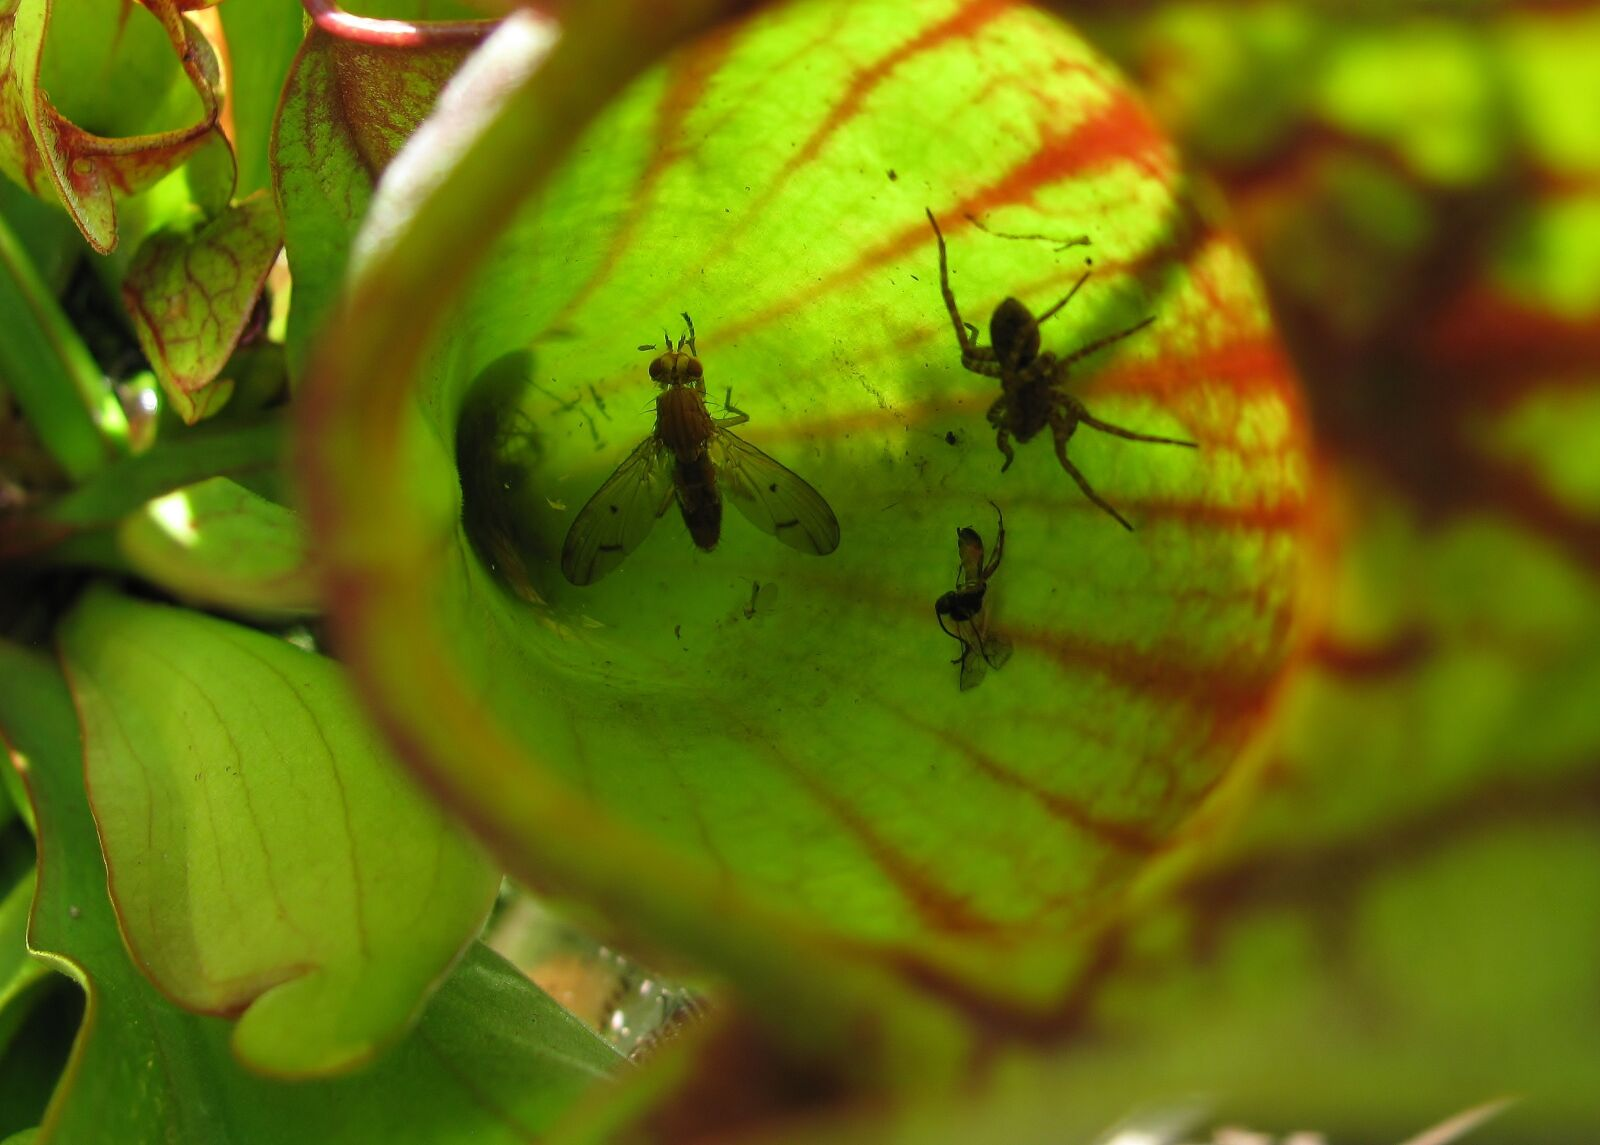 """Canon PowerShot SX110 IS sample photo. """"Pitcher plant, insect, food"""" photography"""